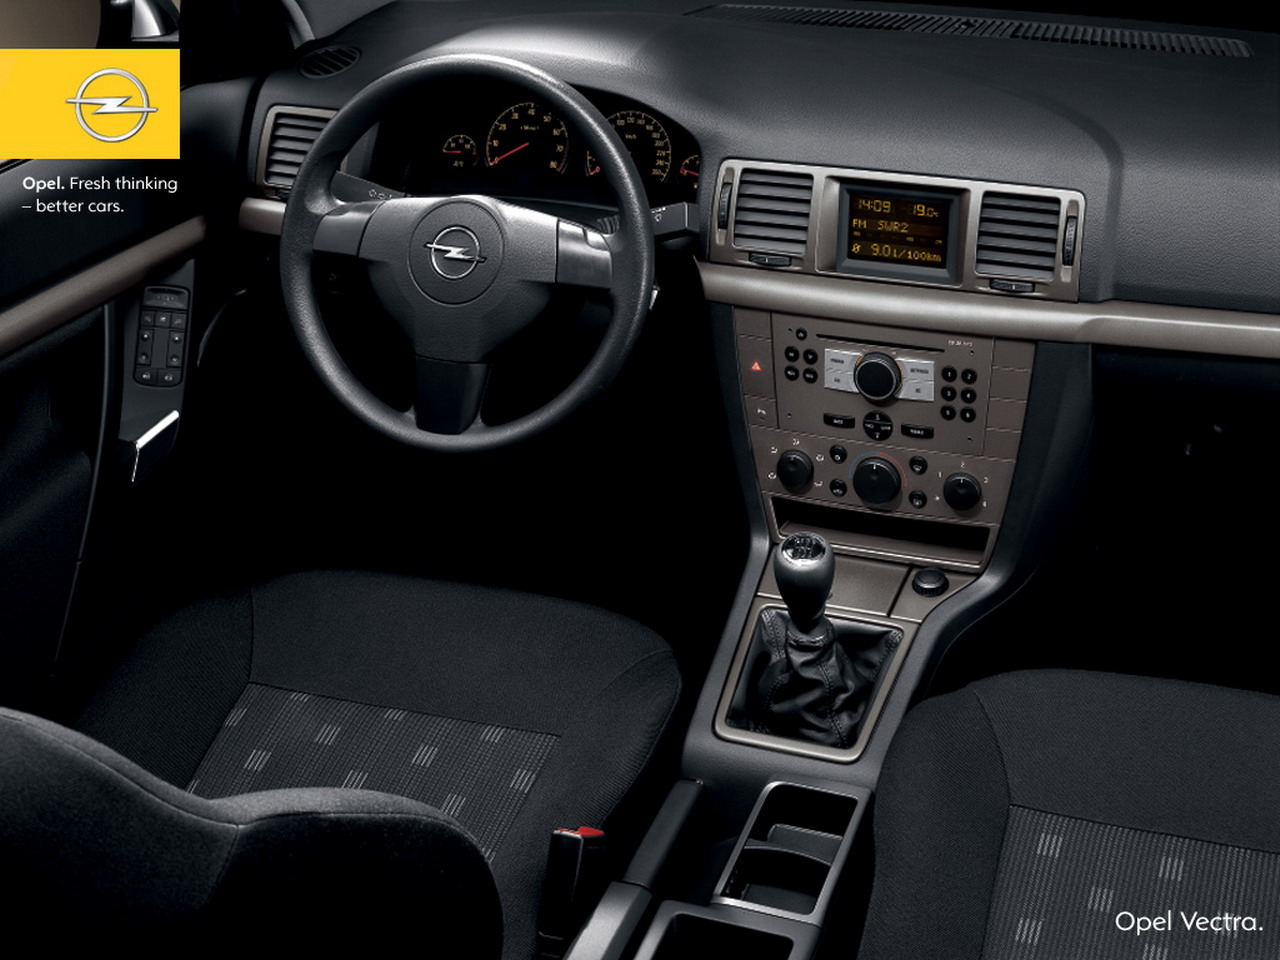 Opel Vectra Interior